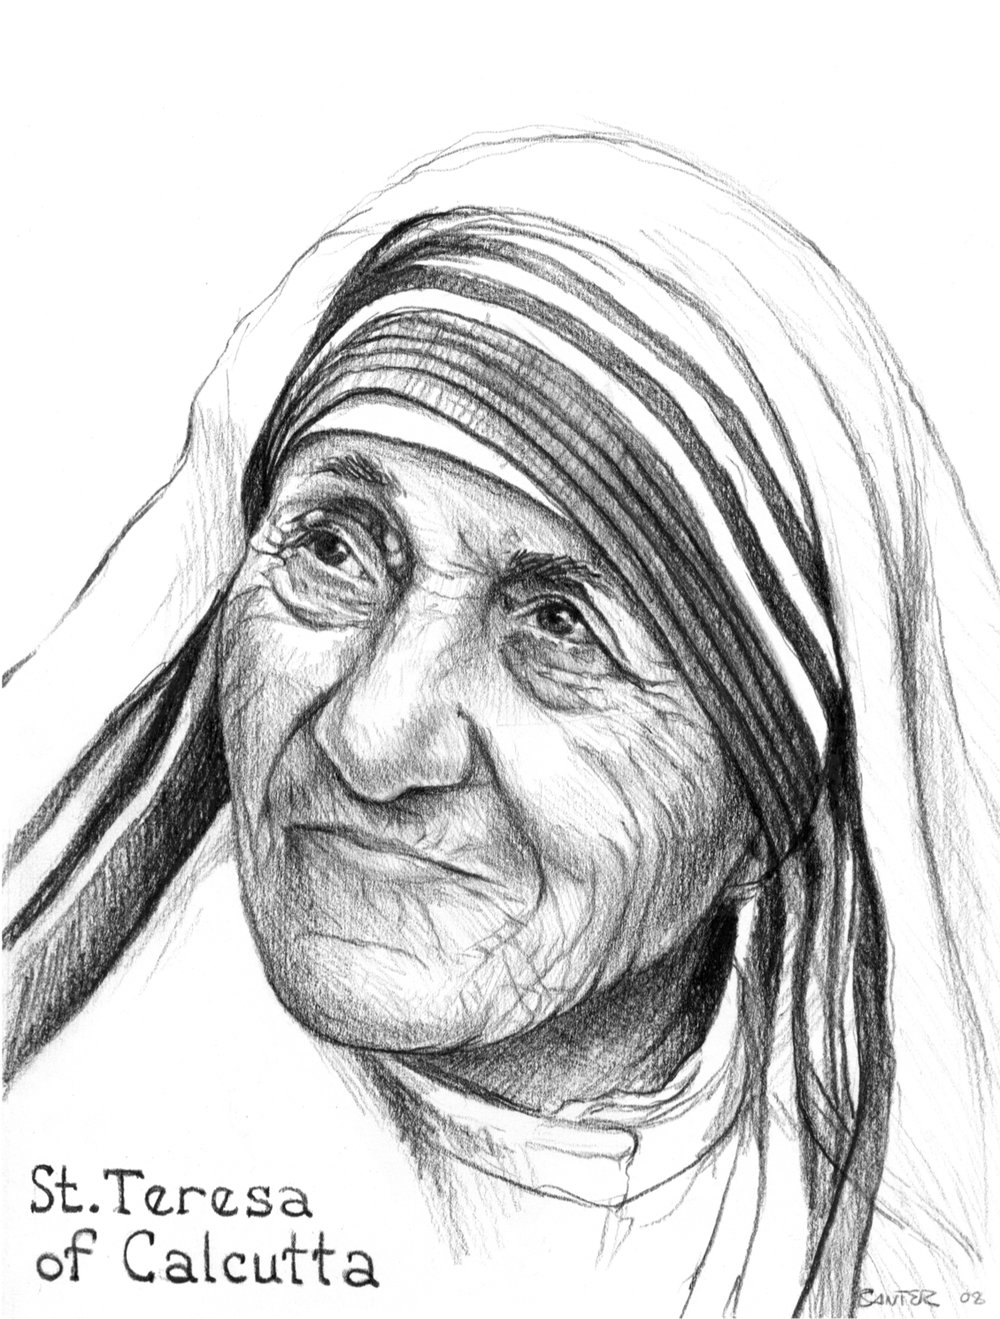 St. Teresa of Calcutta.jpg